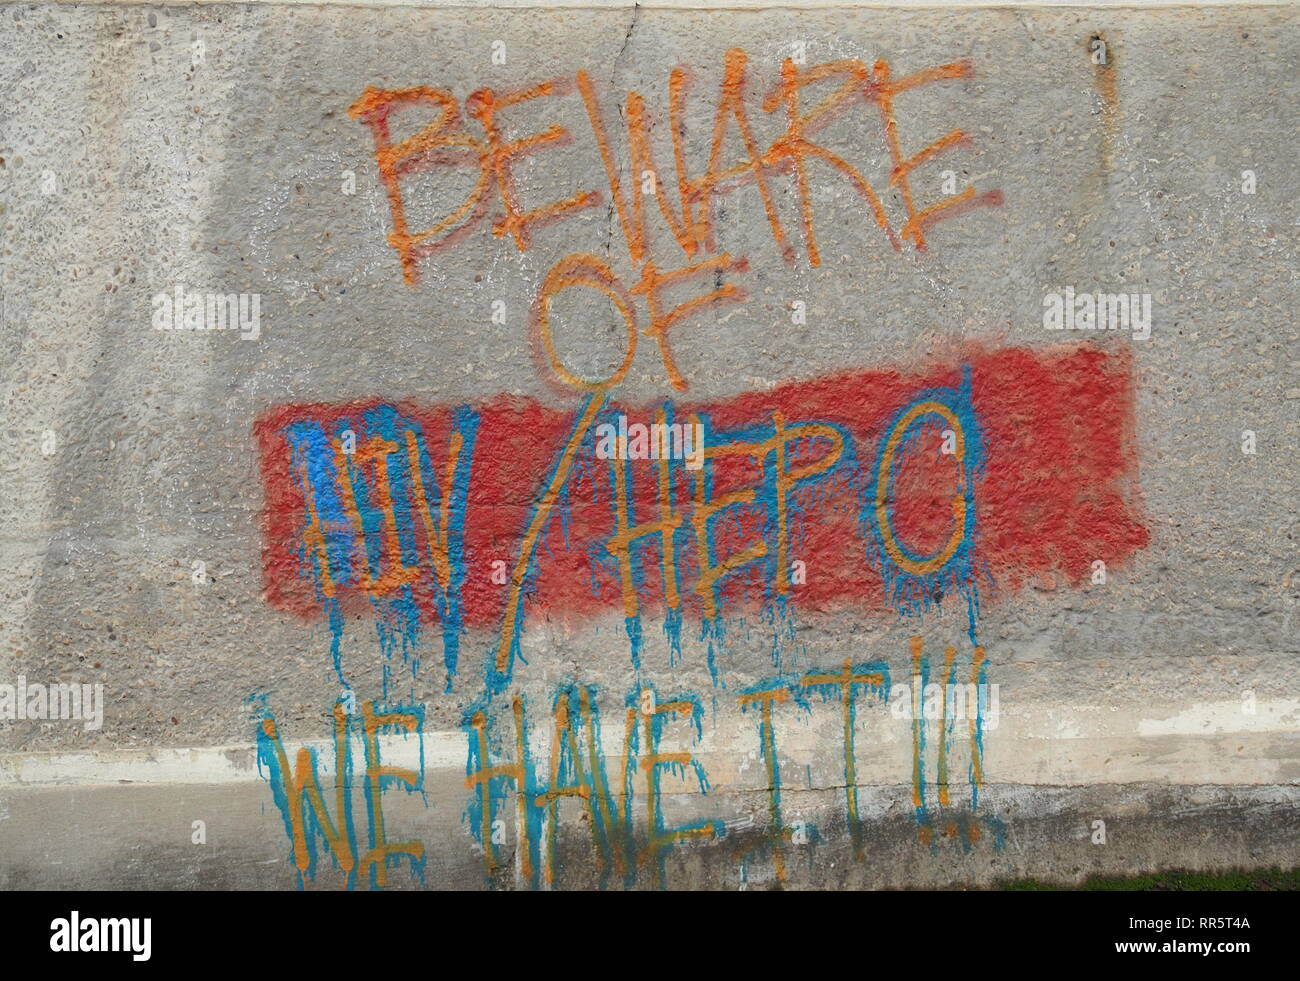 HIV and Hep C graffiti painted on building wall - Stock Image